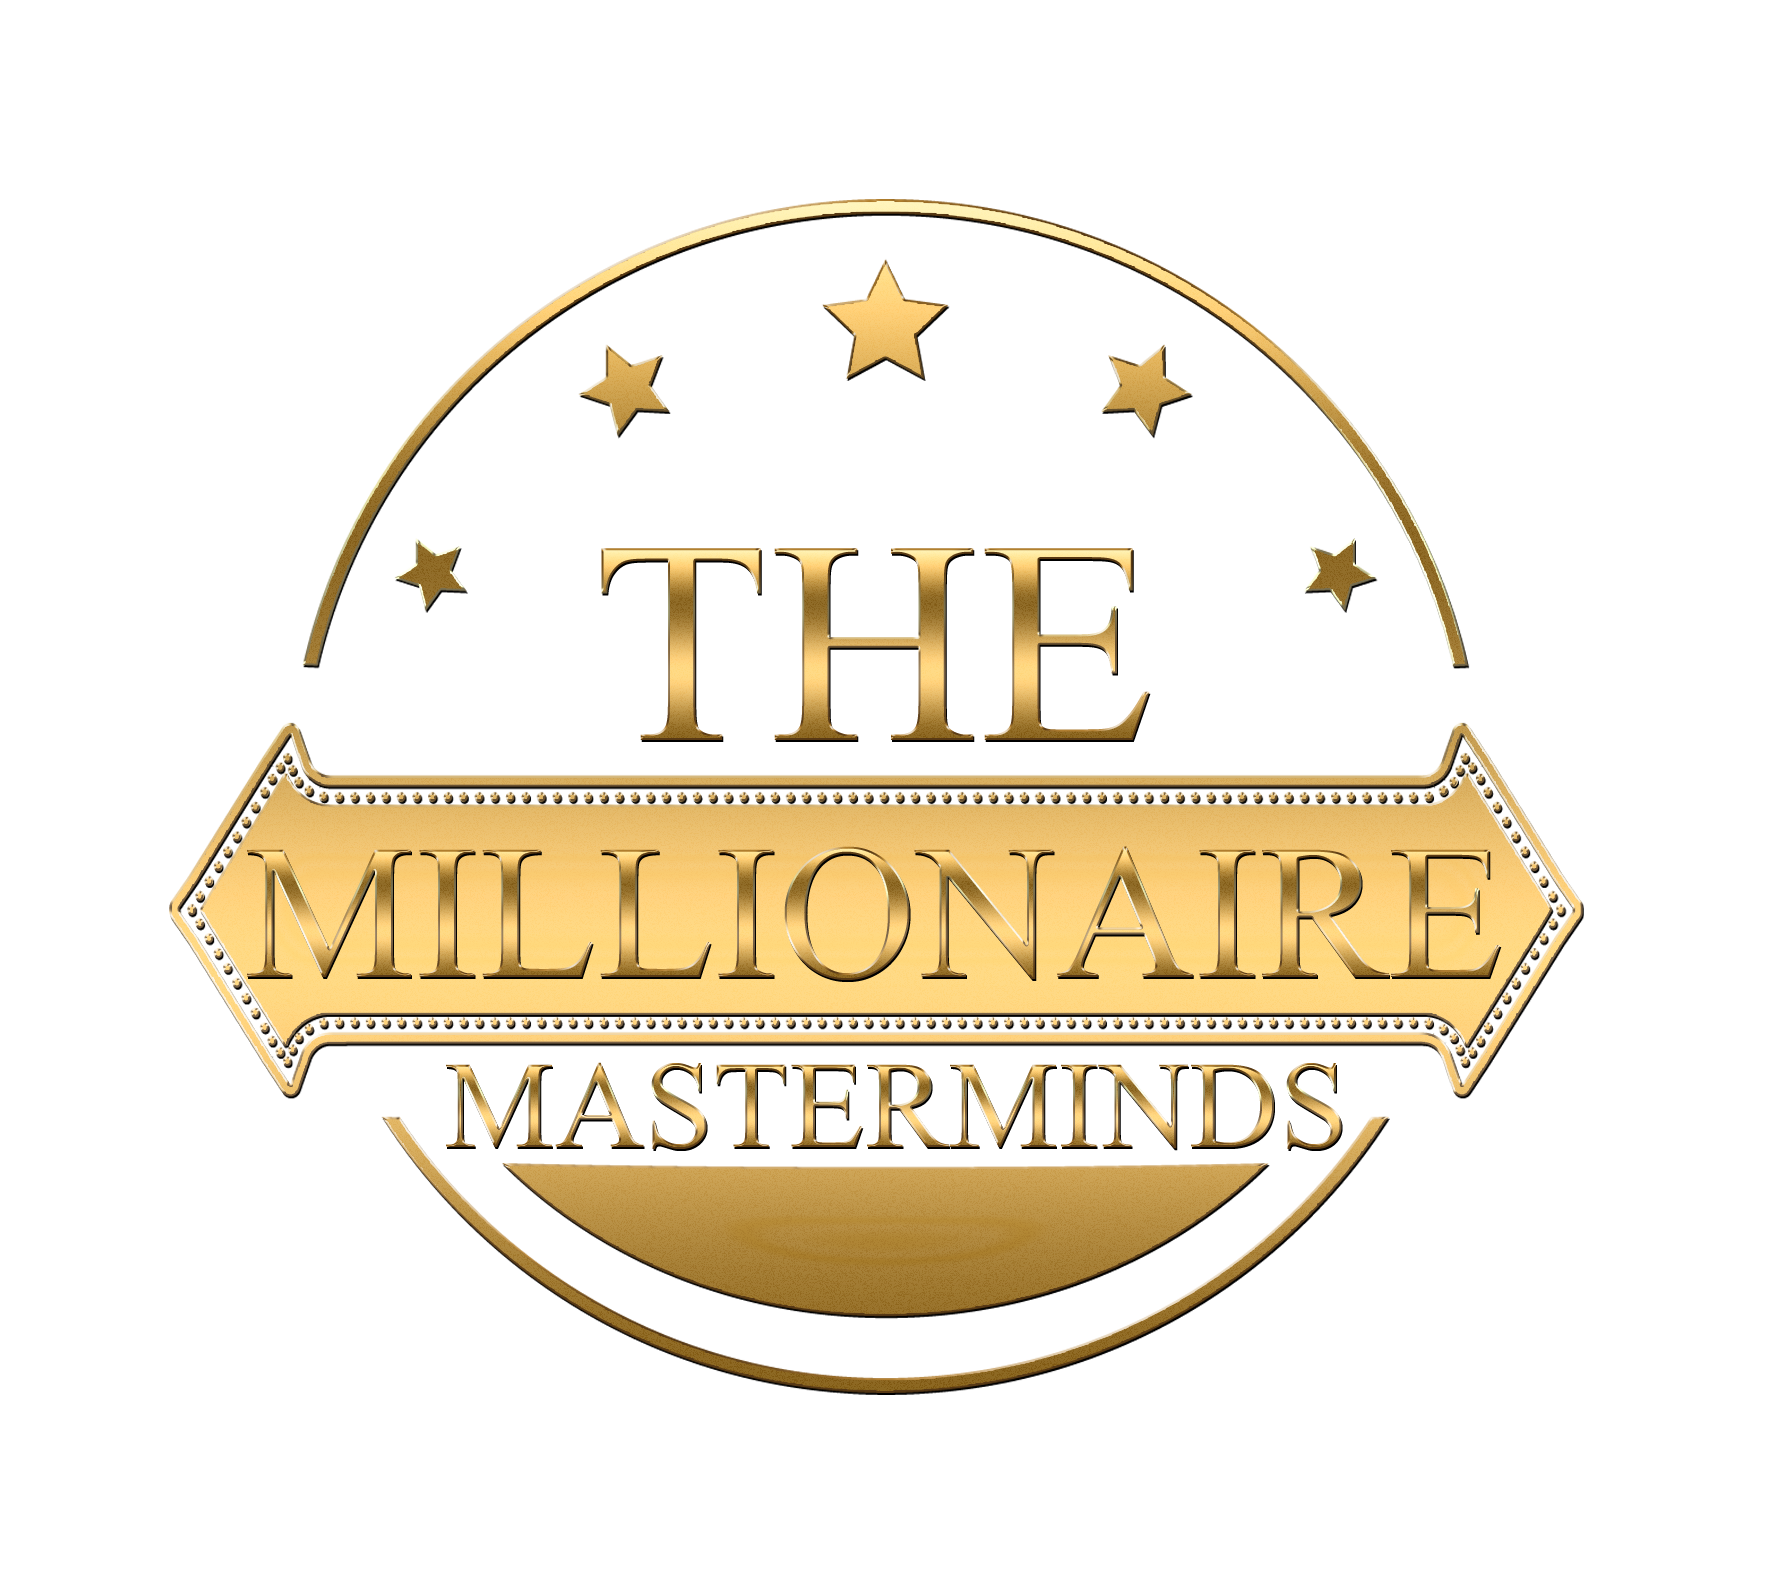 The Millionaire Masterminds logo by jknock1 The Millionaire Masterminds  logo by jknock1 - PNG Millionaire